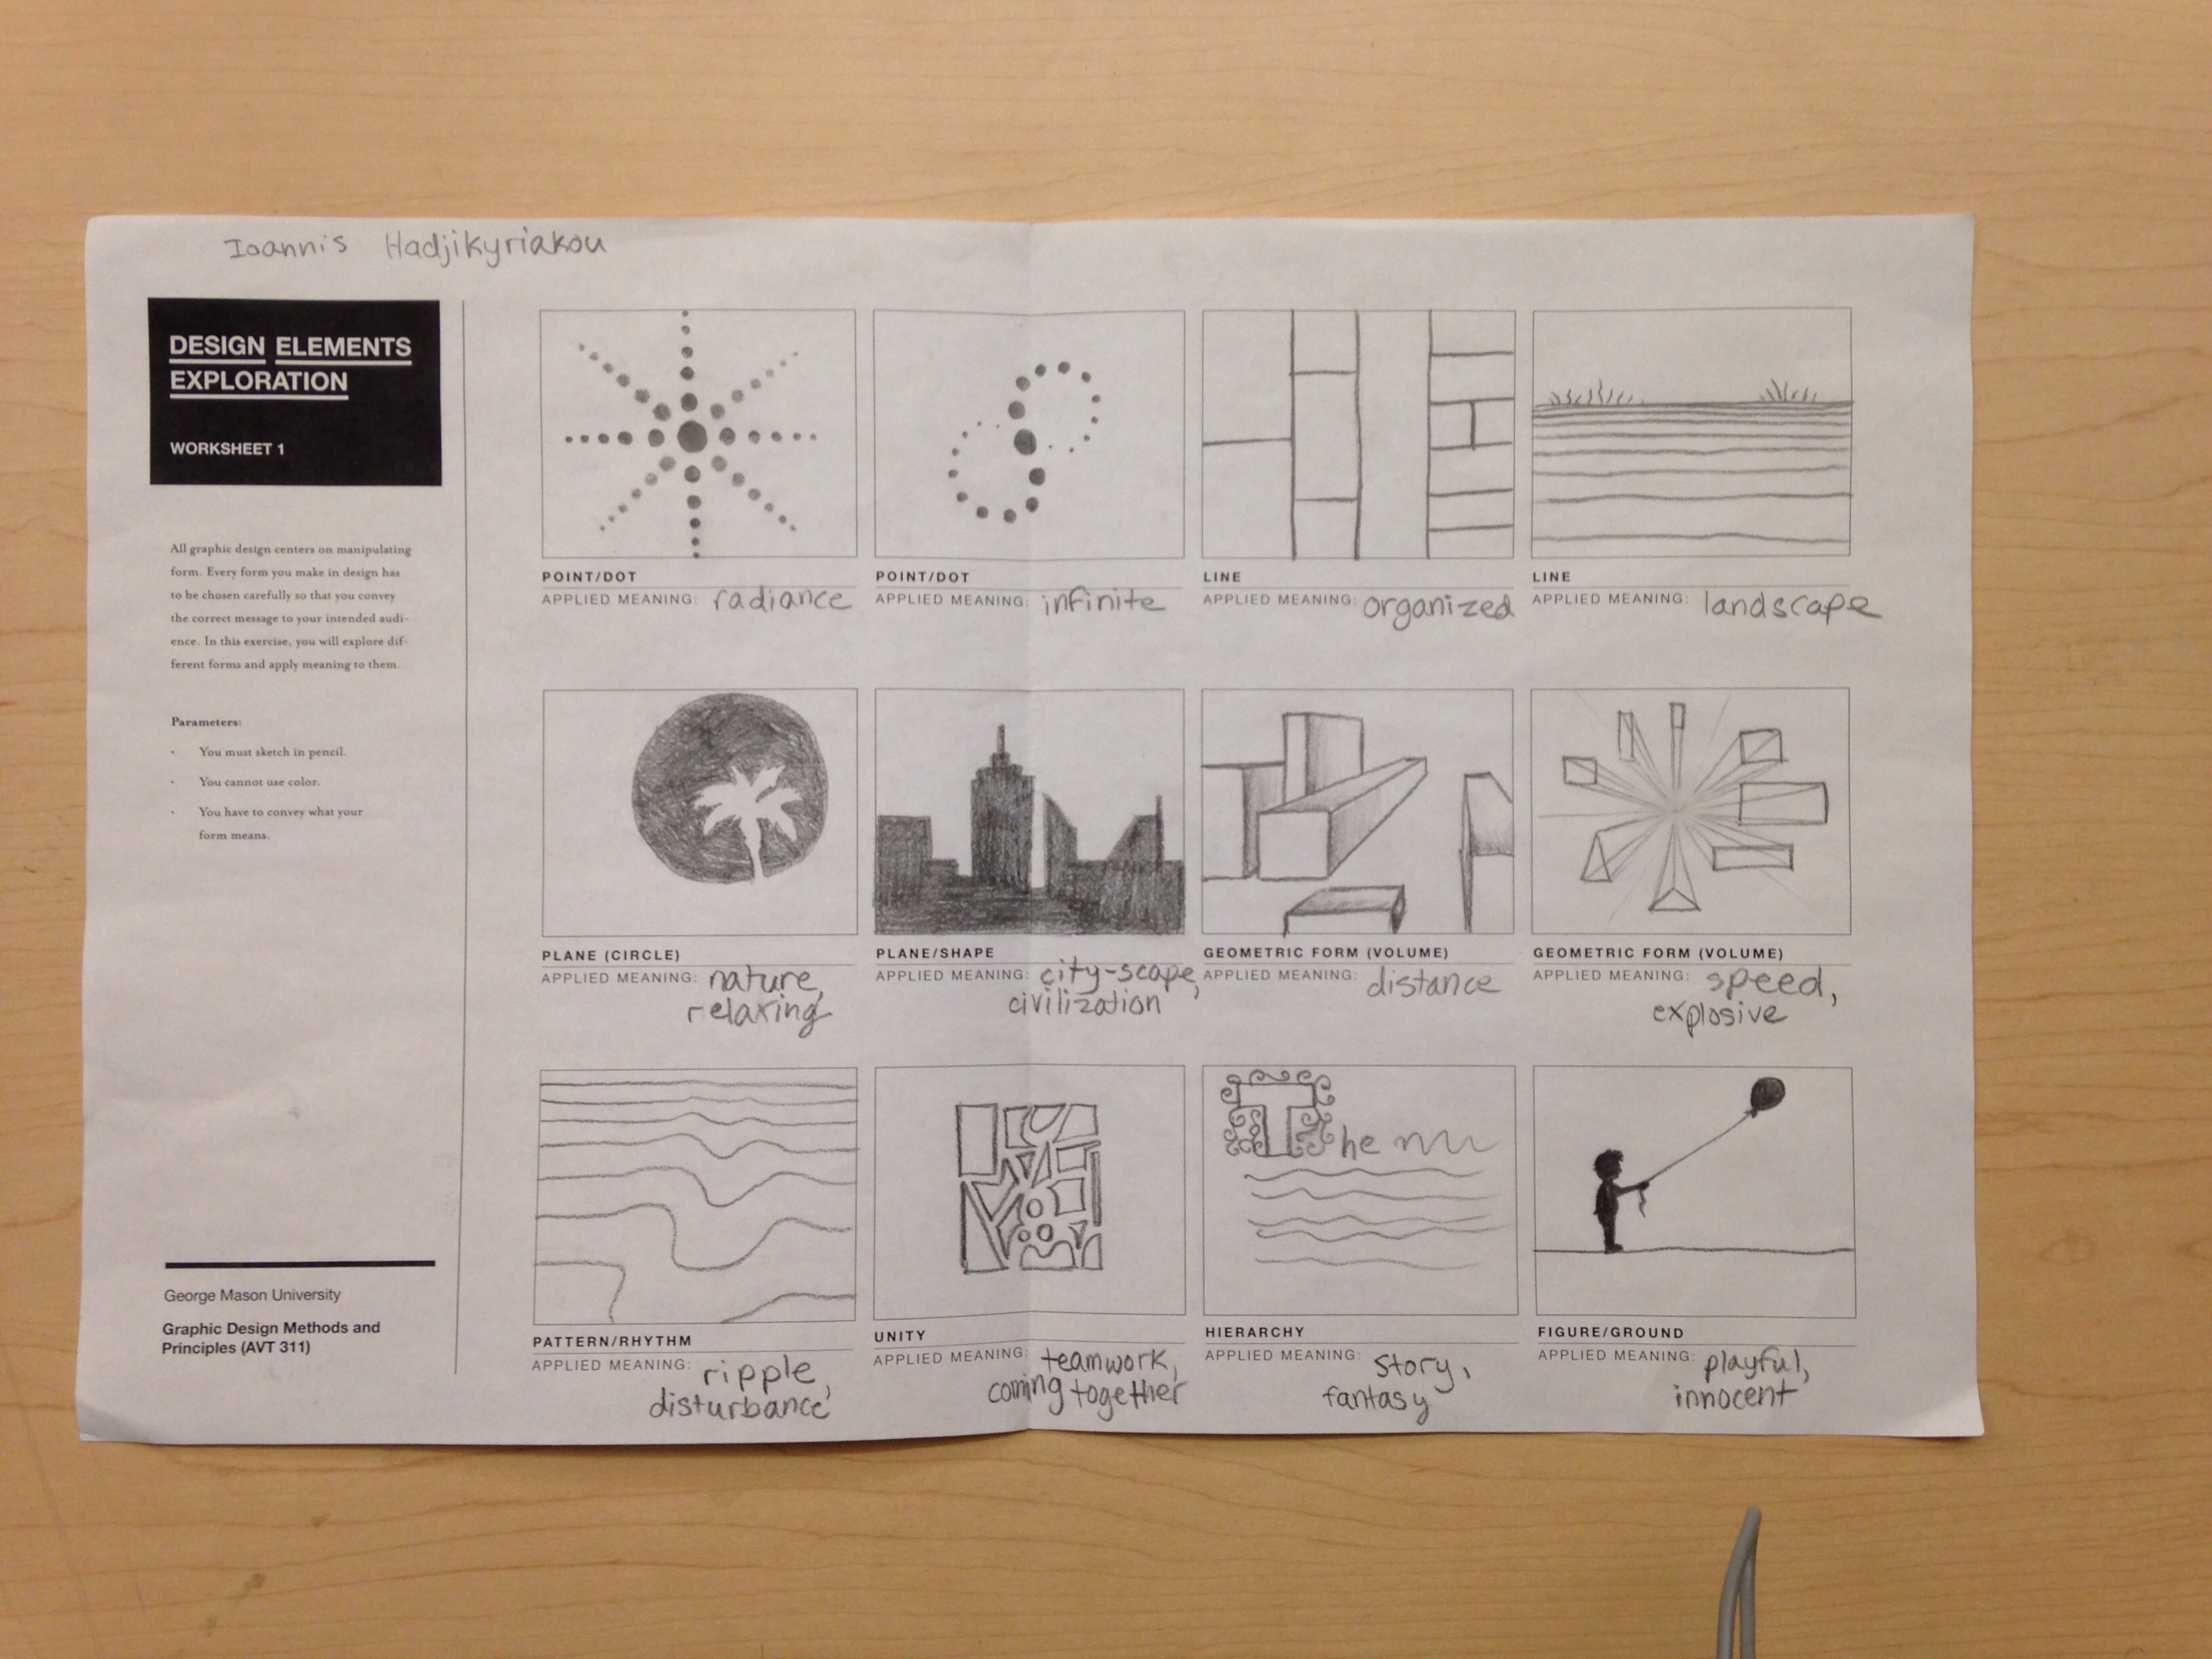 My First Worksheet In Avt 311 Experimenting With